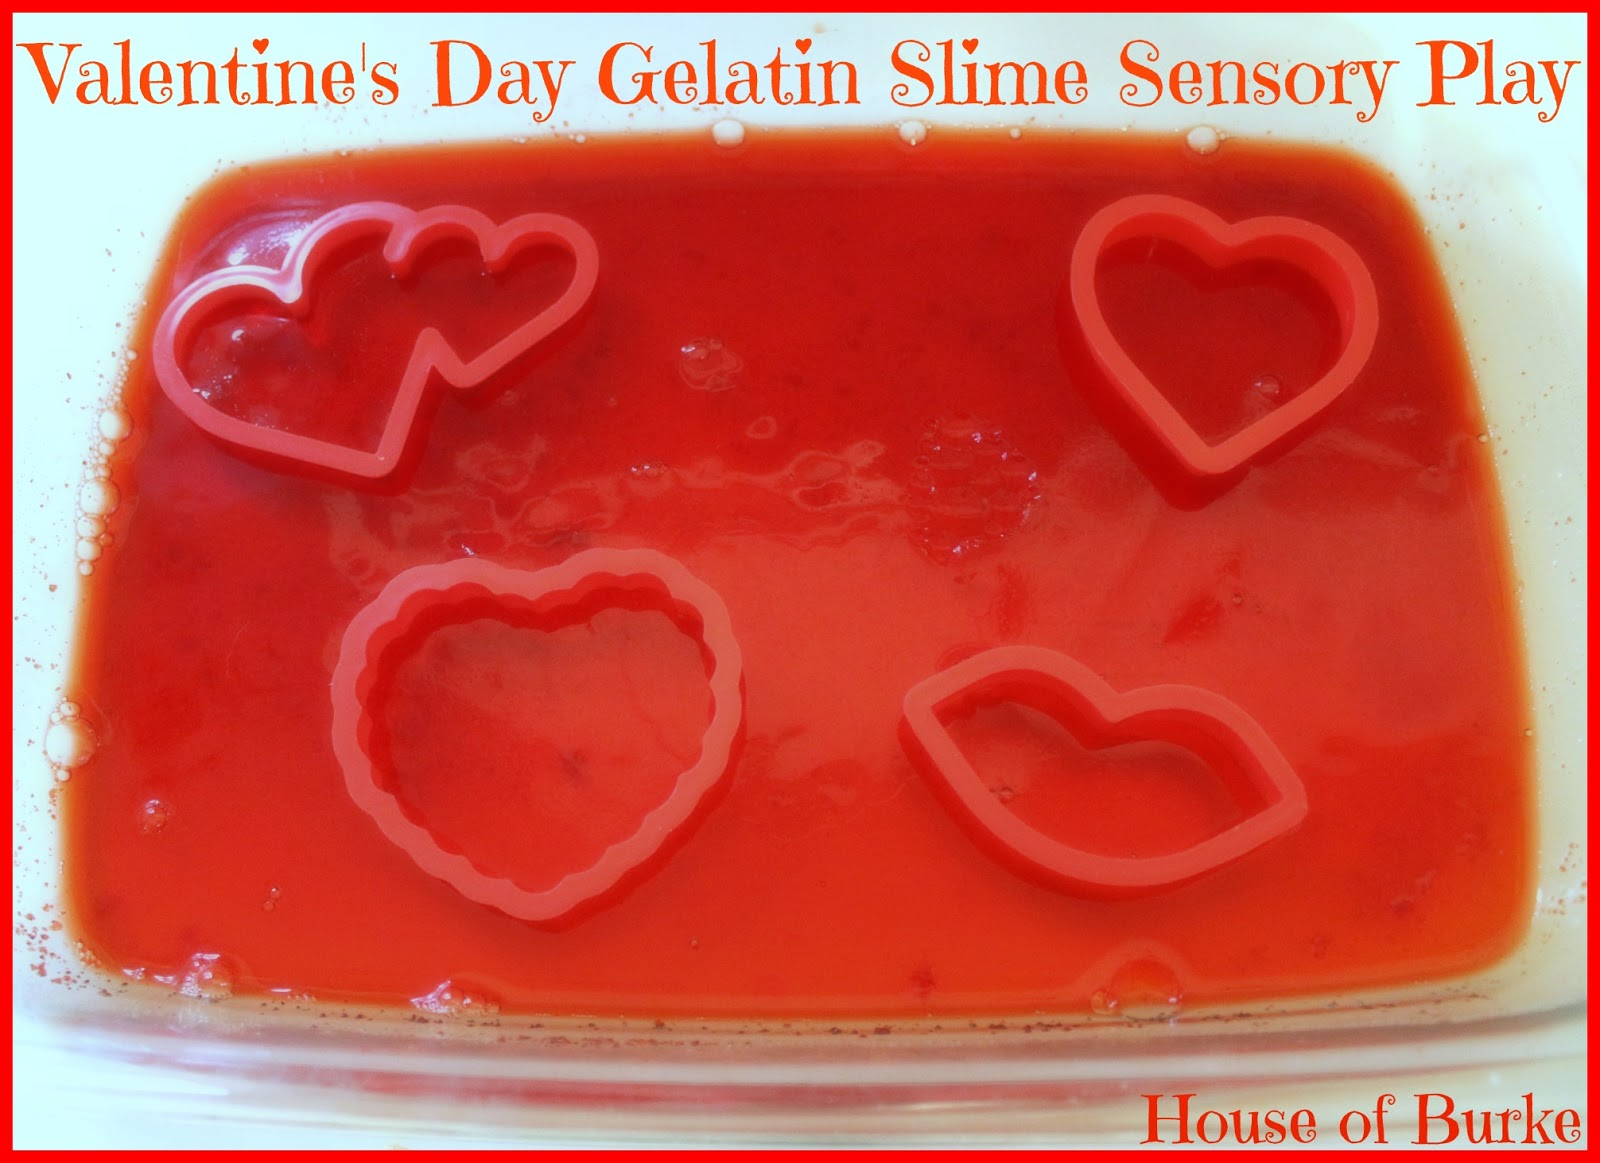 house of burke: valentine's day gelatin slime sensory play, Ideas